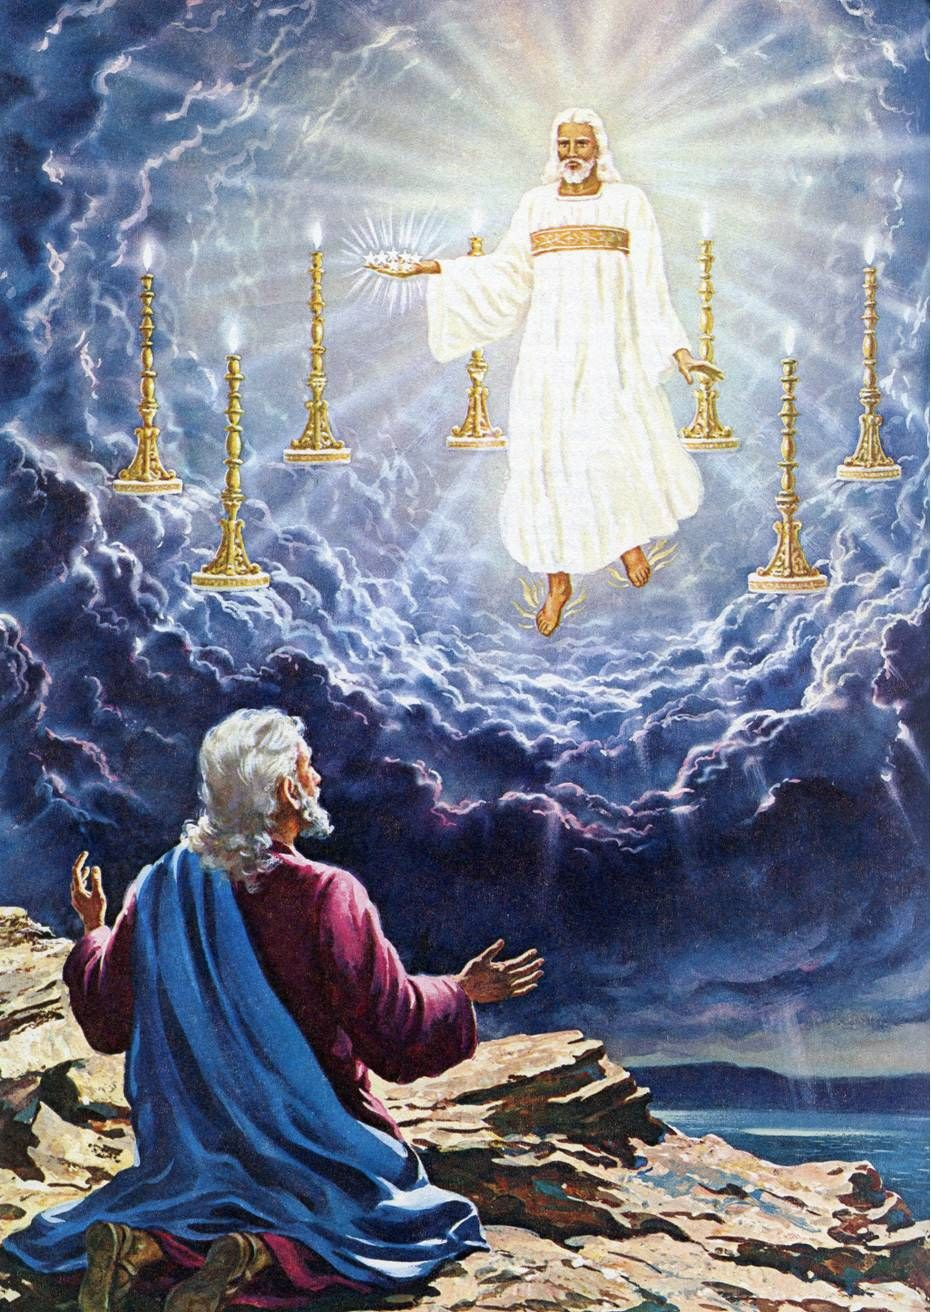 The Things Past (Rev 1:9-20) | Pictures of jesus christ, Bible pictures,  Jesus pictures